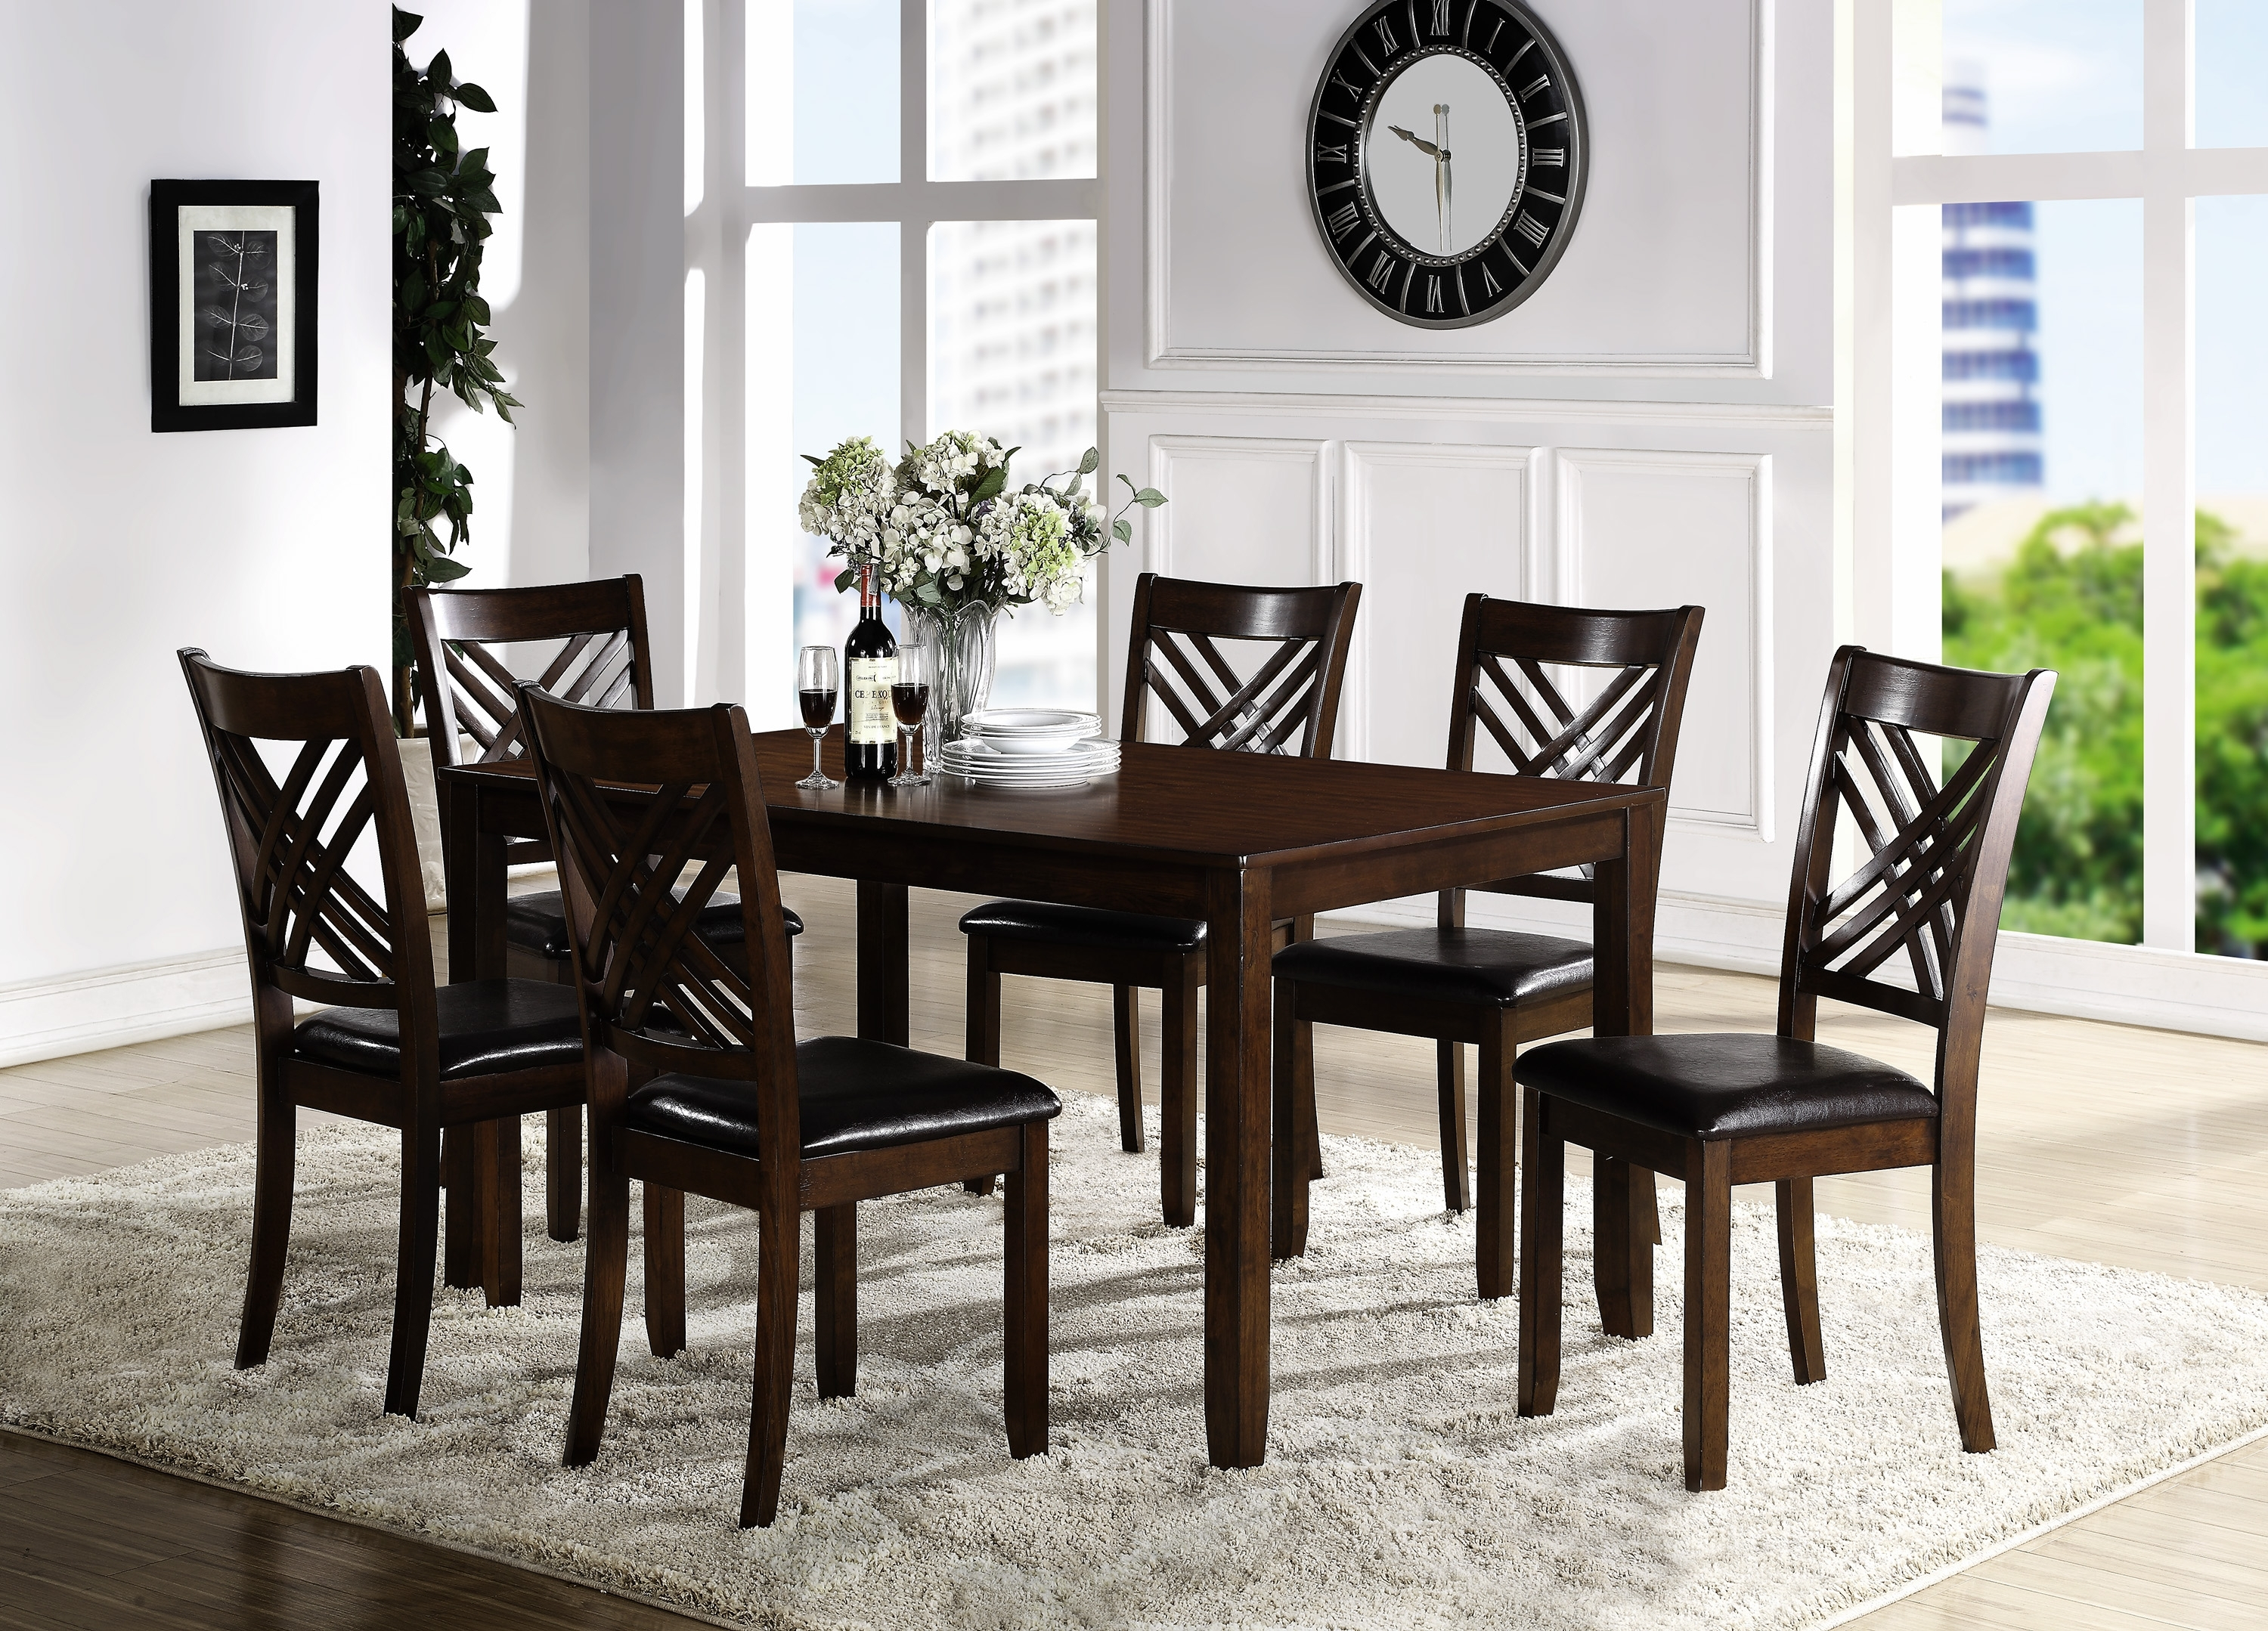 Lindy Espresso Rectangle Dining Tables Inside Most Recently Released Crown Mark Eloise Dining Room Table With Six Crossback Side Chairs (View 12 of 25)